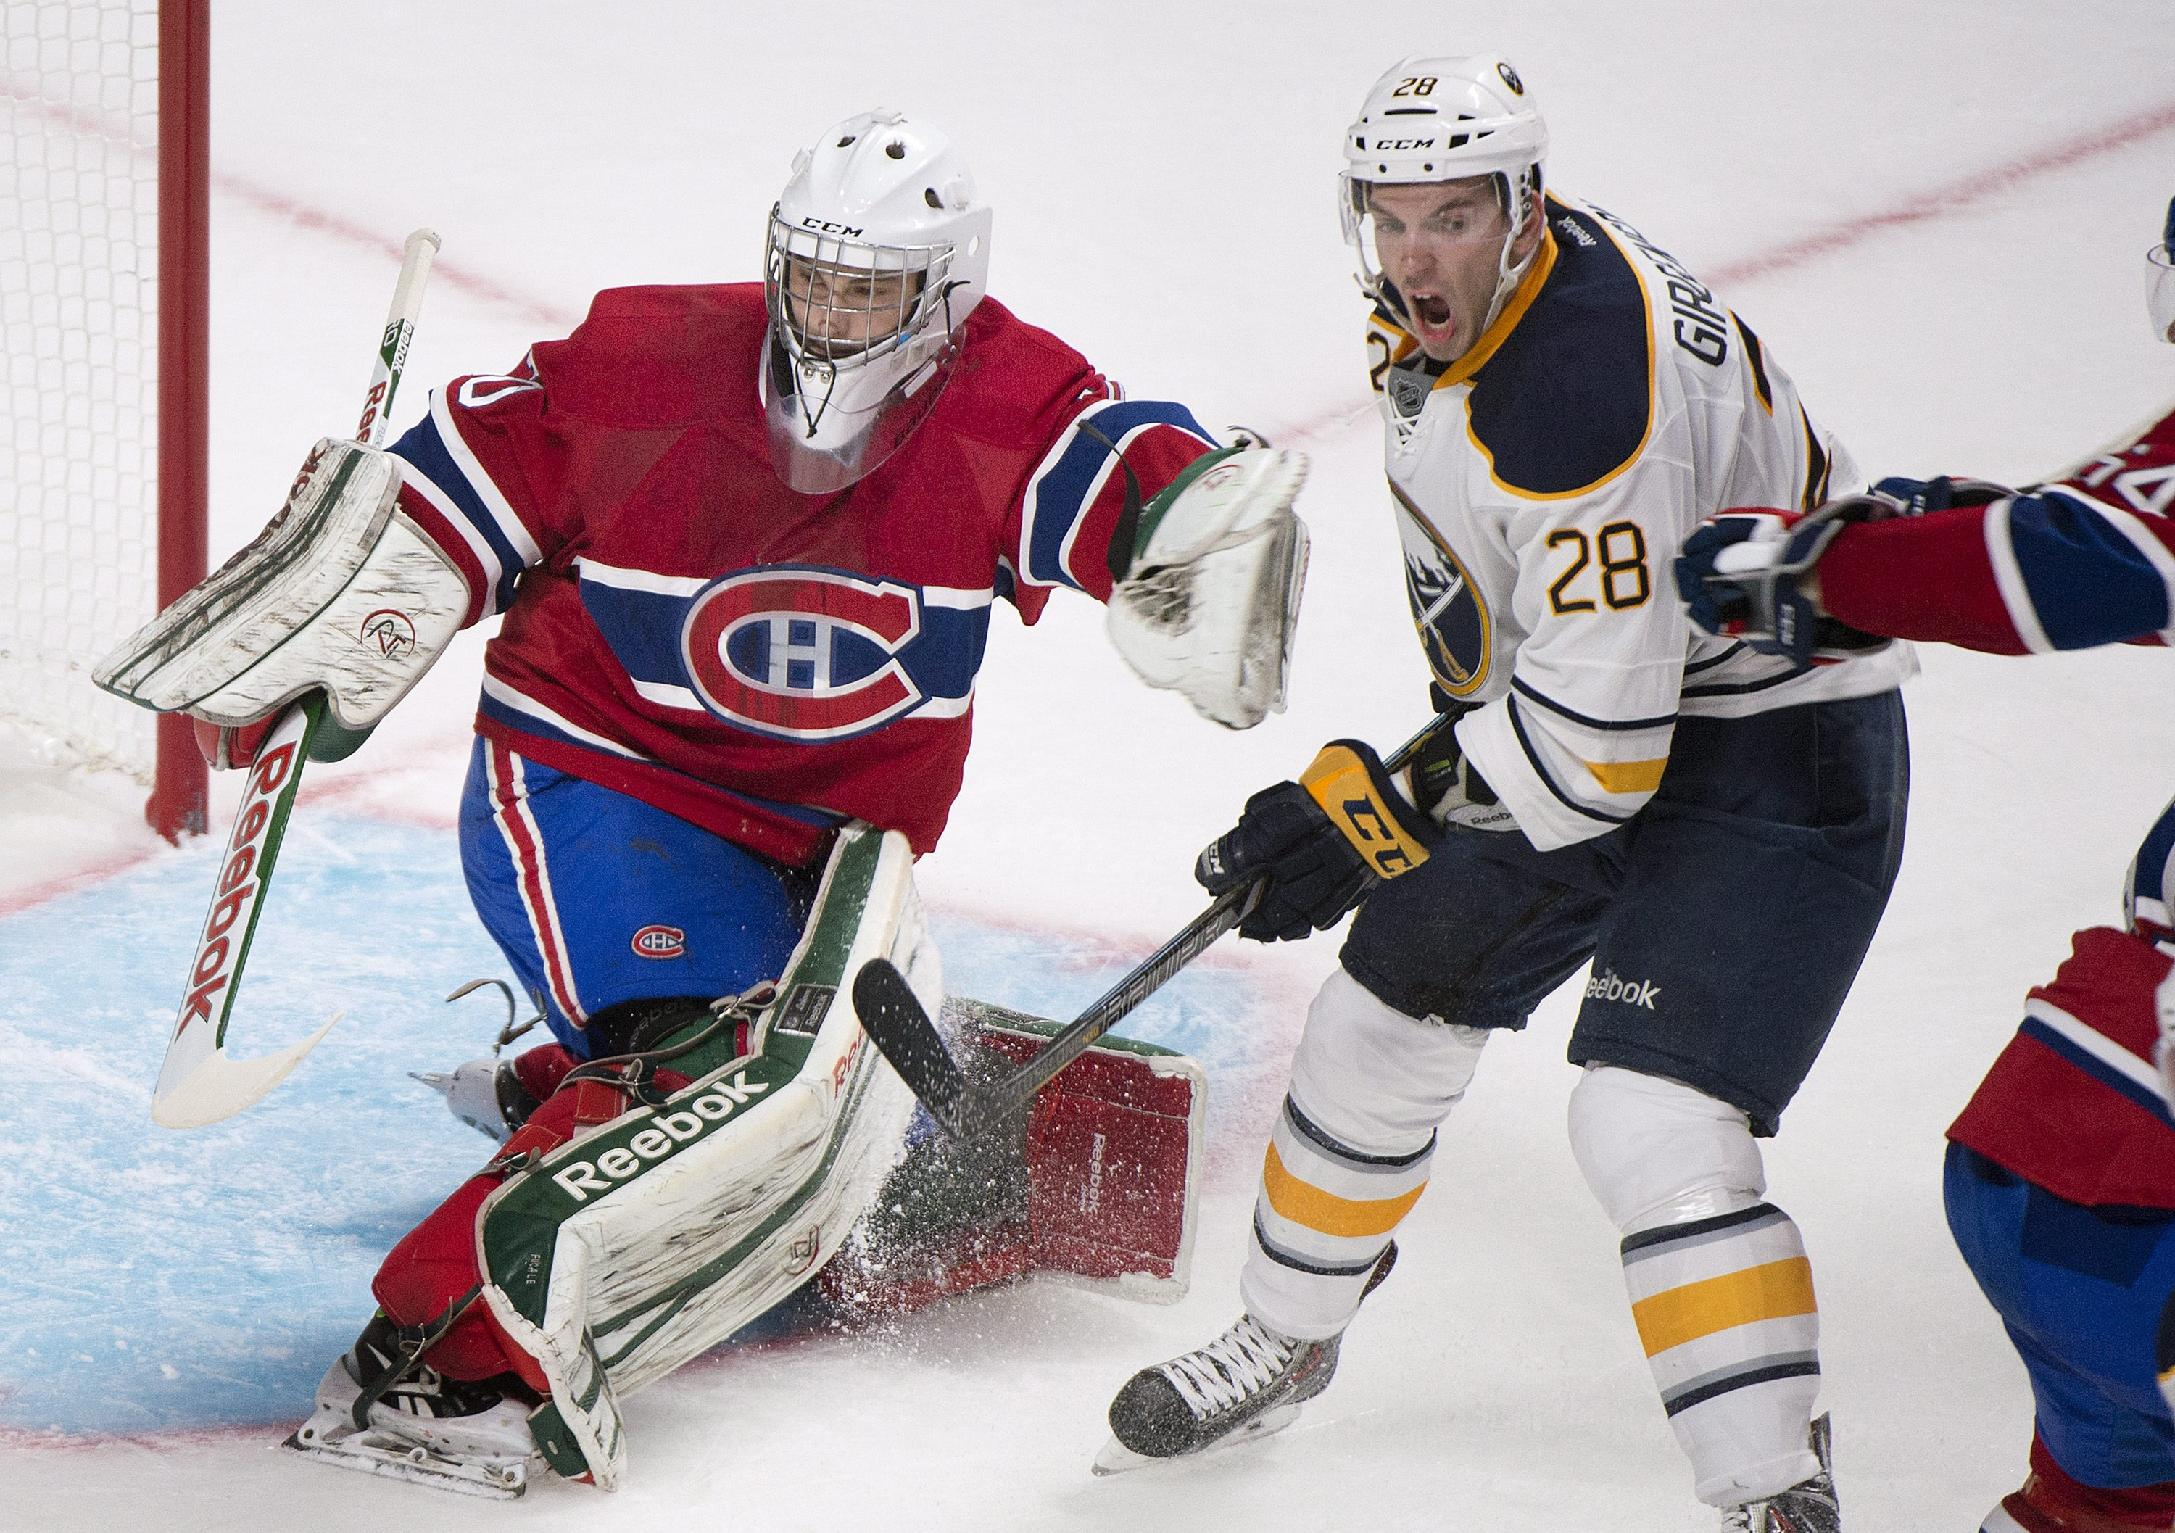 Buffalo Sabres' Zemgus Girgensons (28) moves in on Montreal Canadiens goaltender Zachary Fucale during the second period of an NHL preseason hockey game in Montreal, Sunday, Sept. 15, 2013